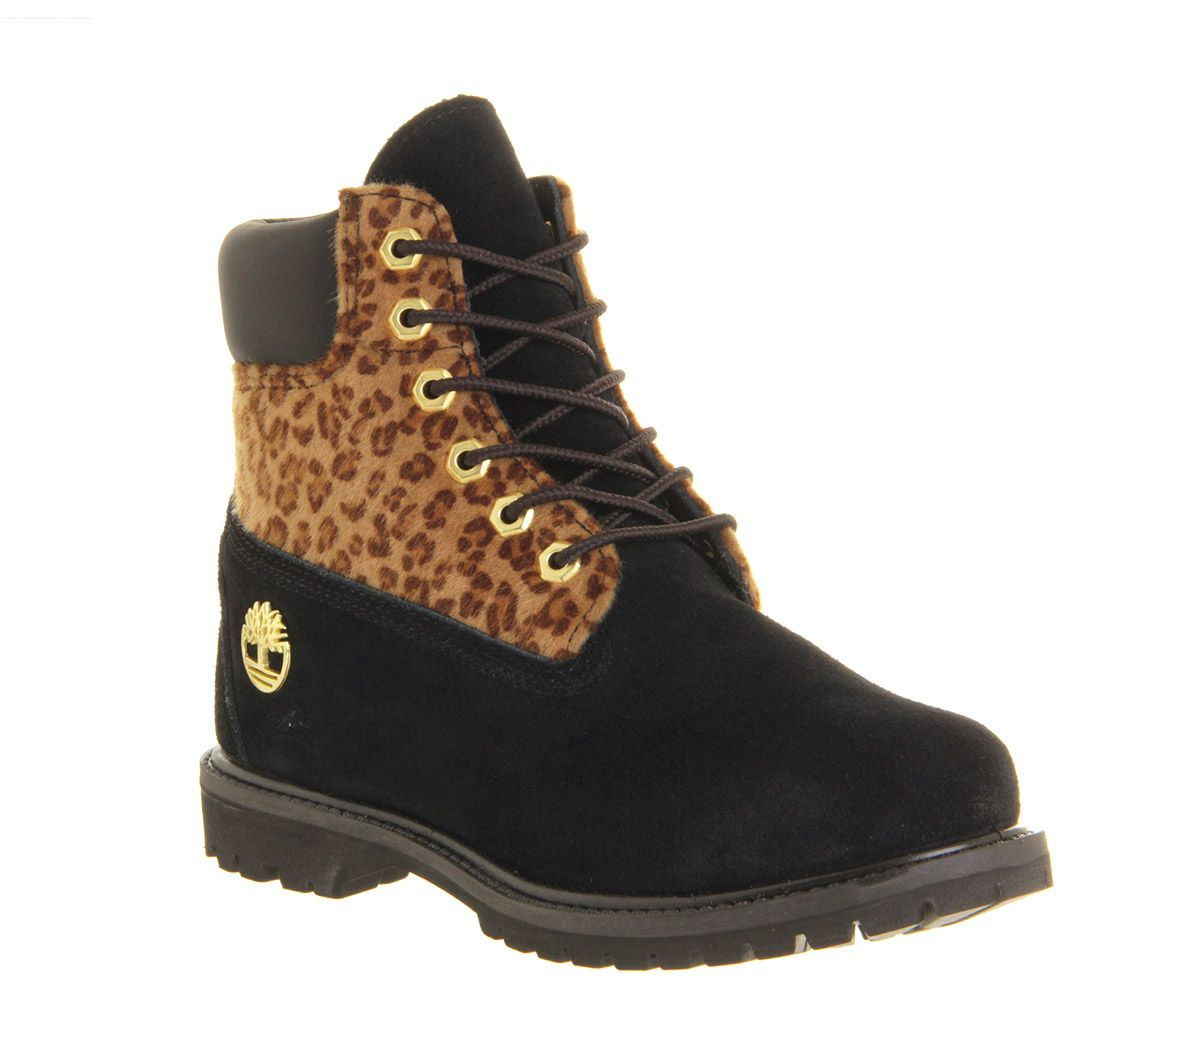 sports shoes f7890 9380b Women's limited edition Timberland boots at Office and ...